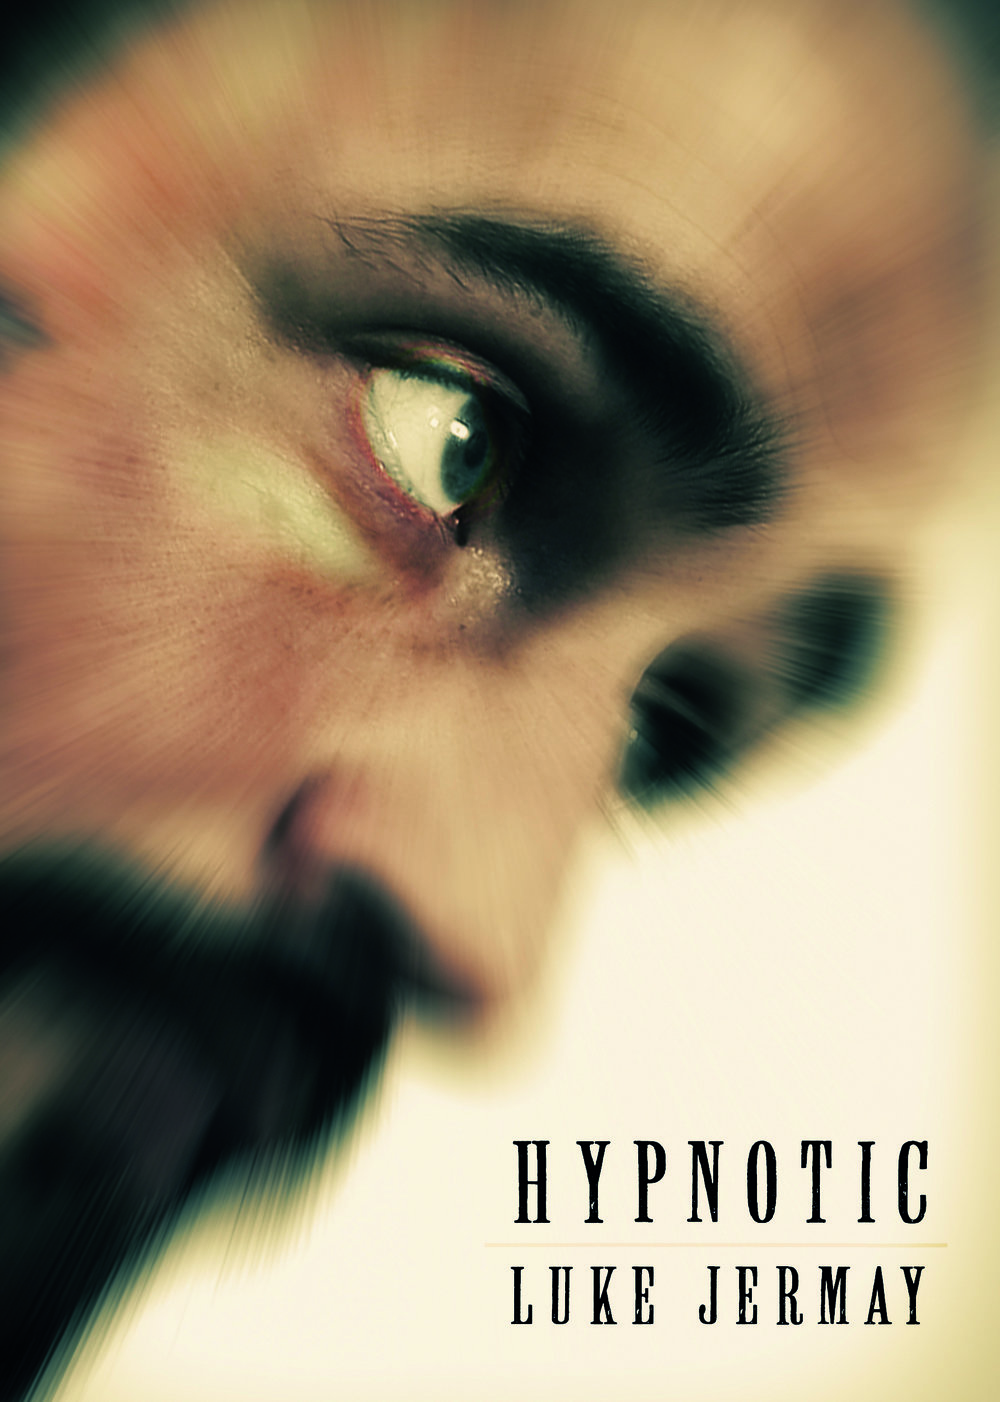 CLICK ABOVE FOR MORE INFORMATION ABOUT HYPNOTIC